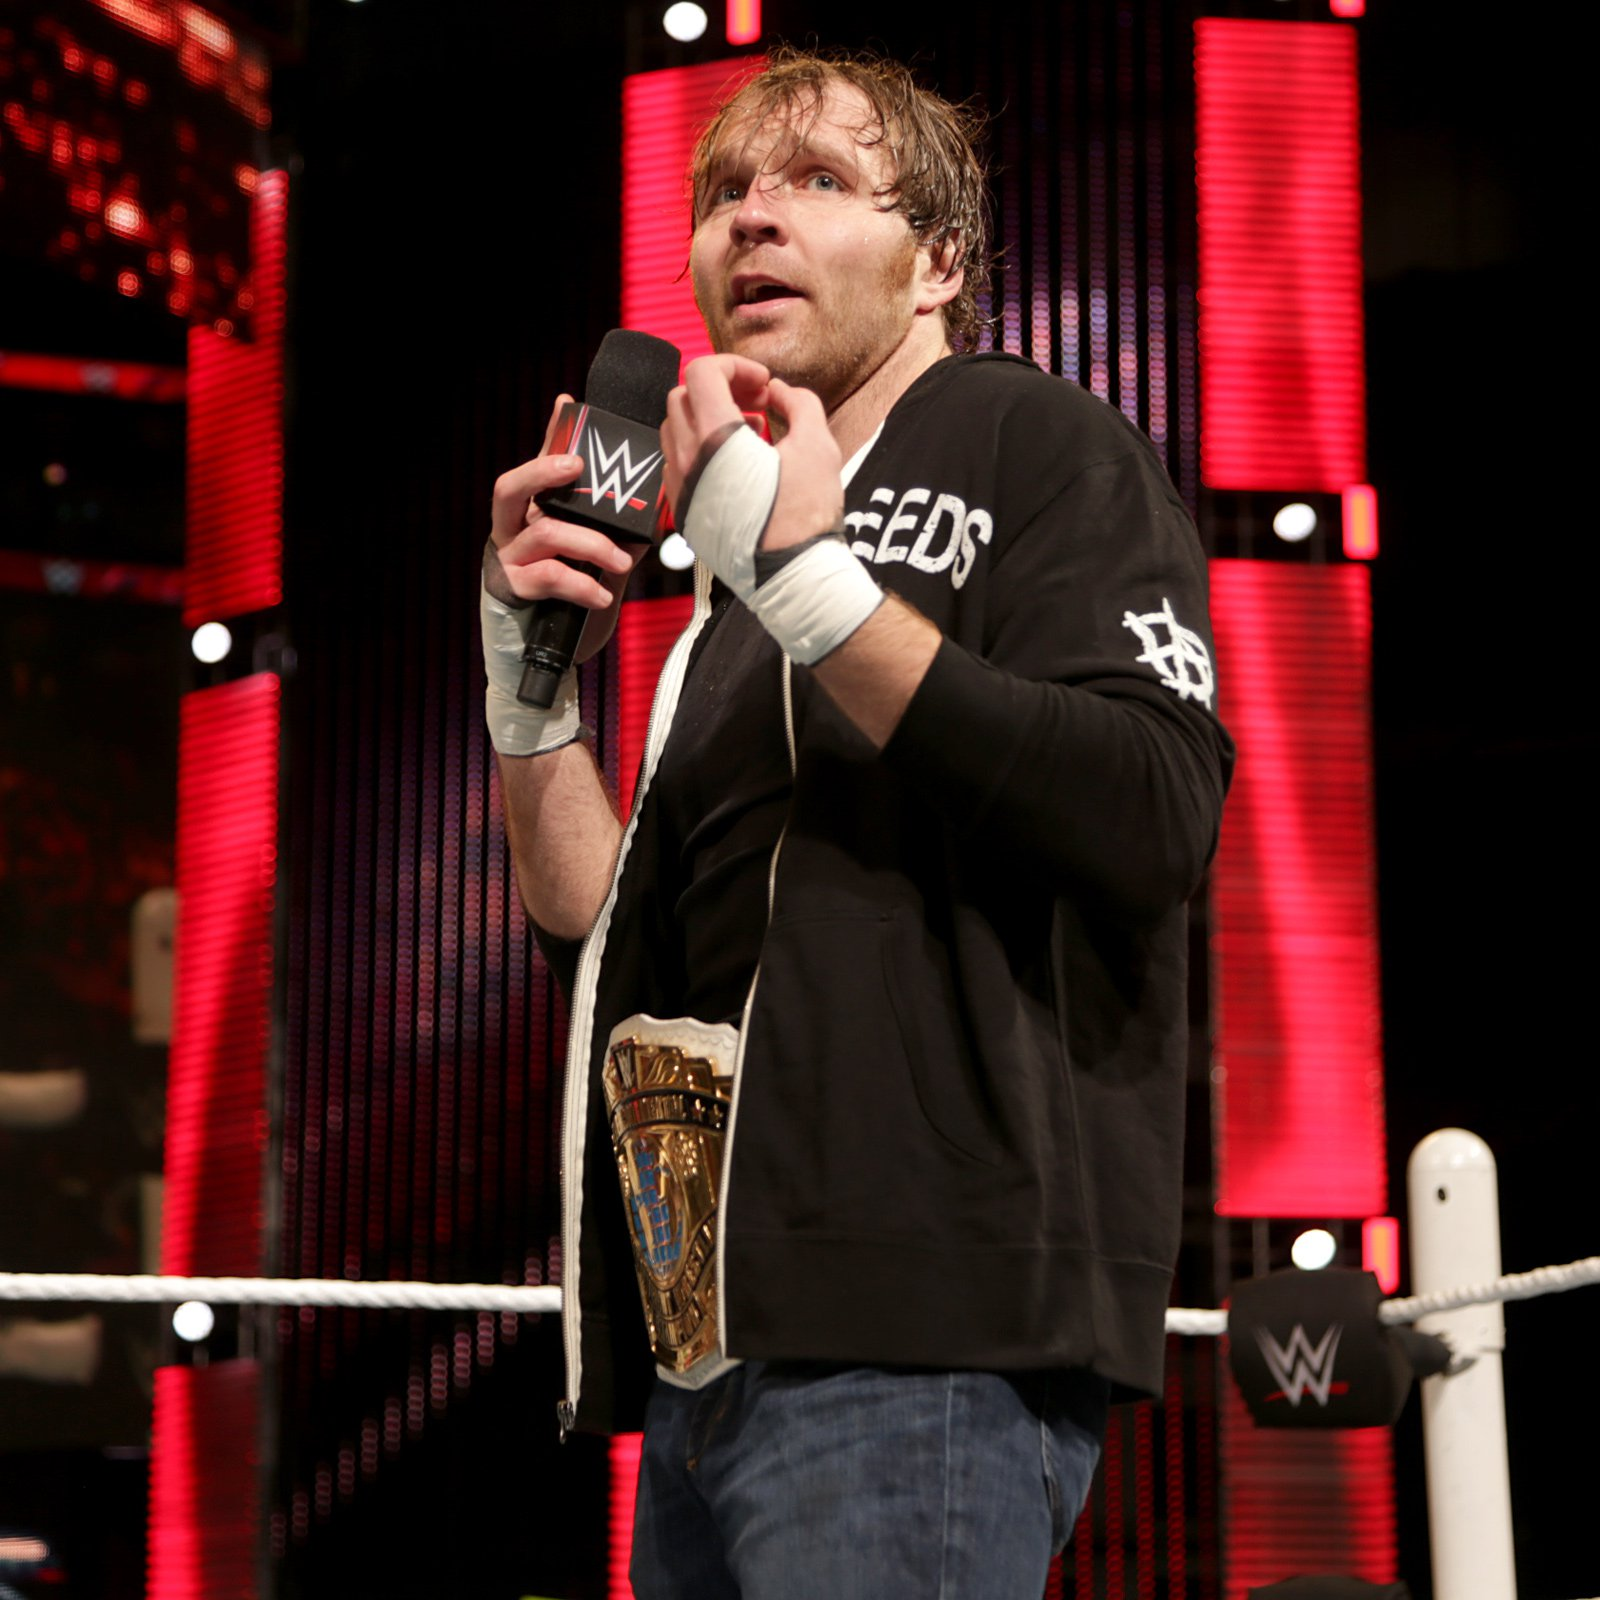 Dean Ambrose kicks off Raw, and he's looking for a fight.